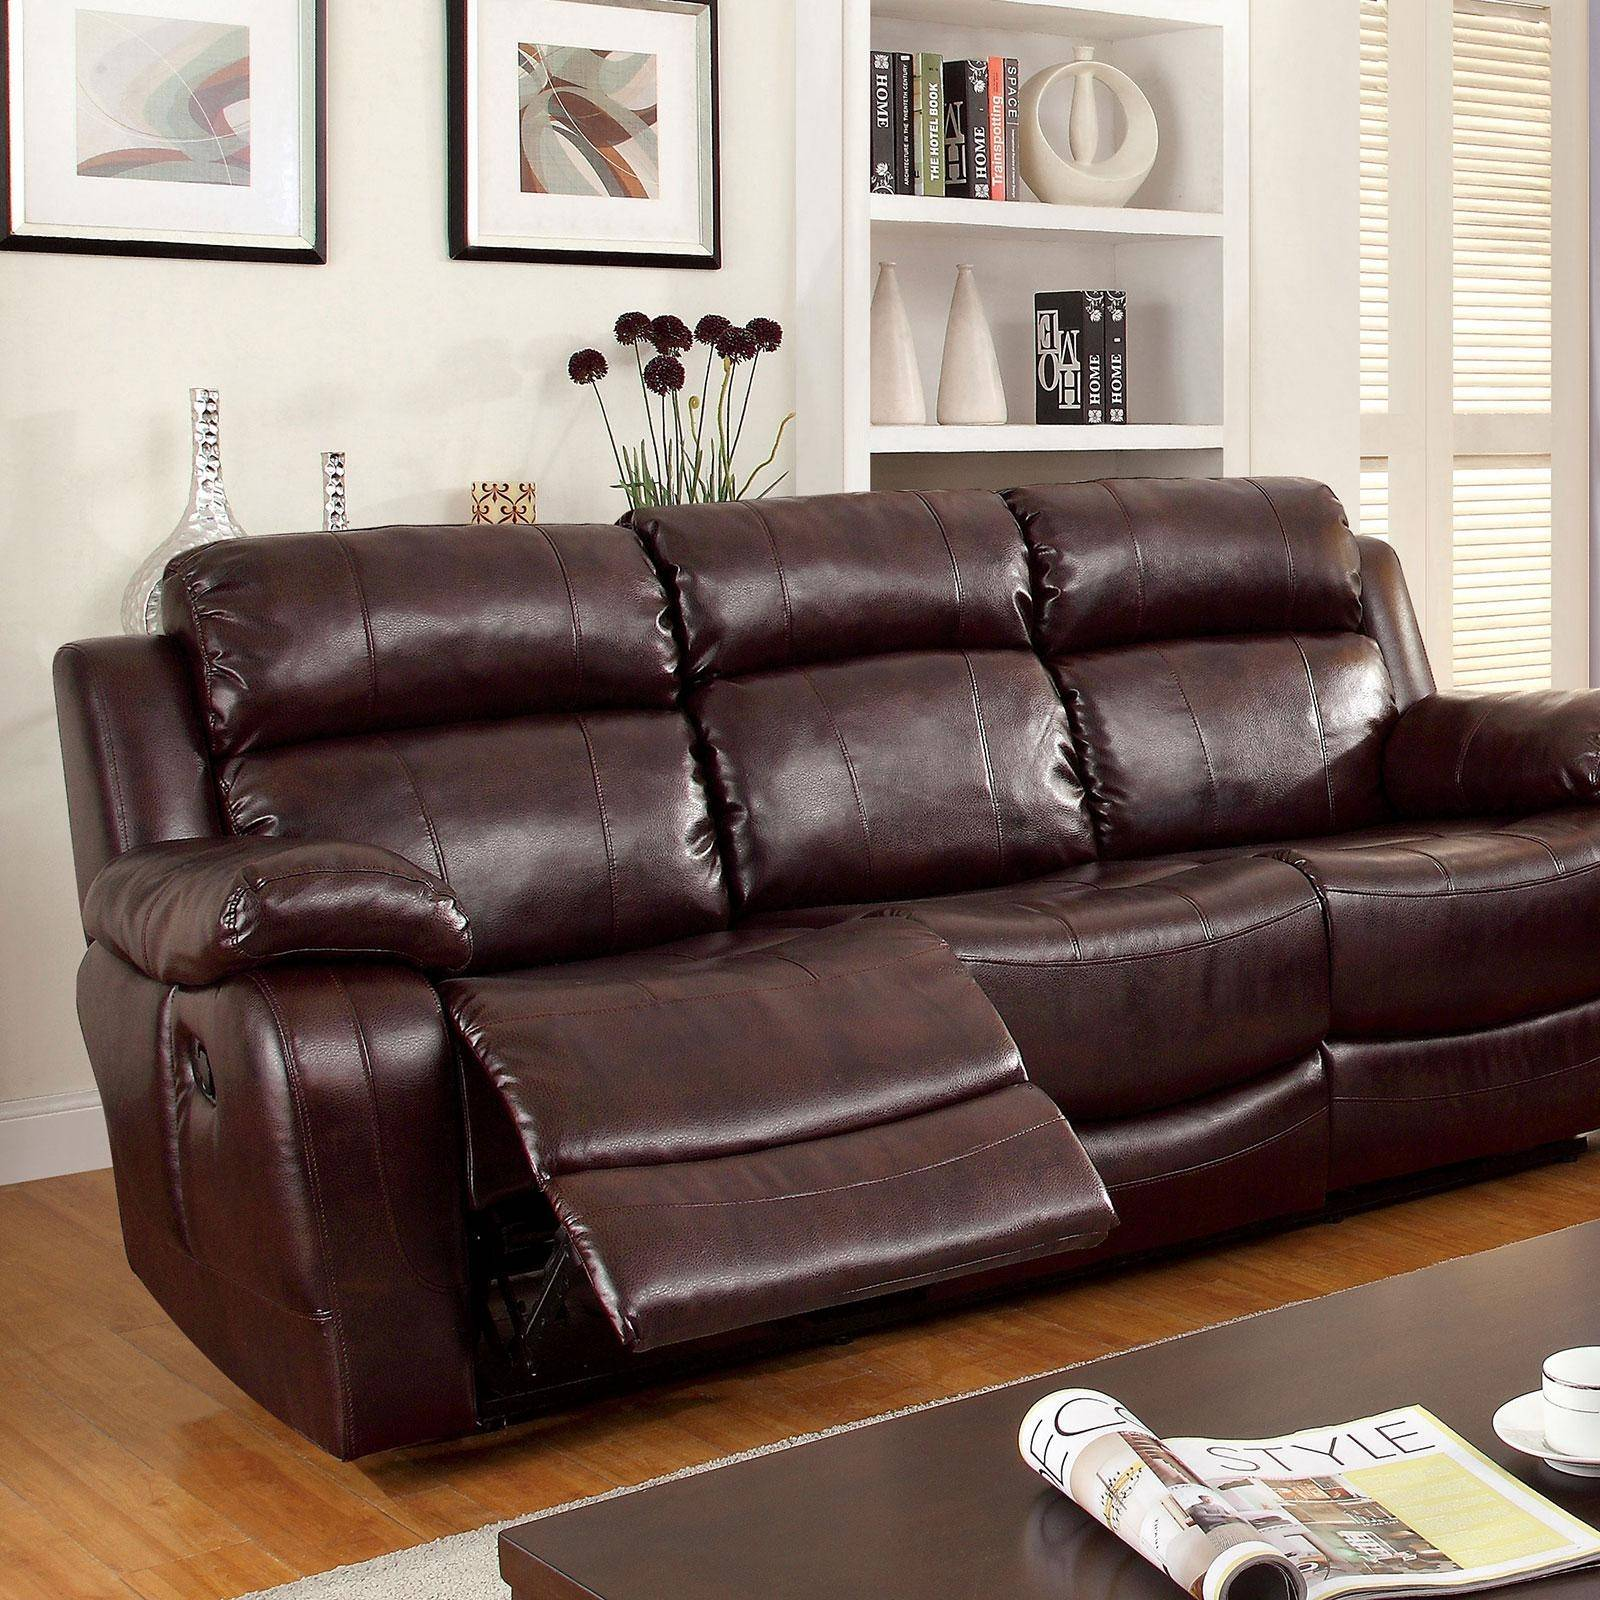 Swell Transitional Brown Bonded Leather Upholstery Reclining Sofa Hughes Foa Group Pdpeps Interior Chair Design Pdpepsorg